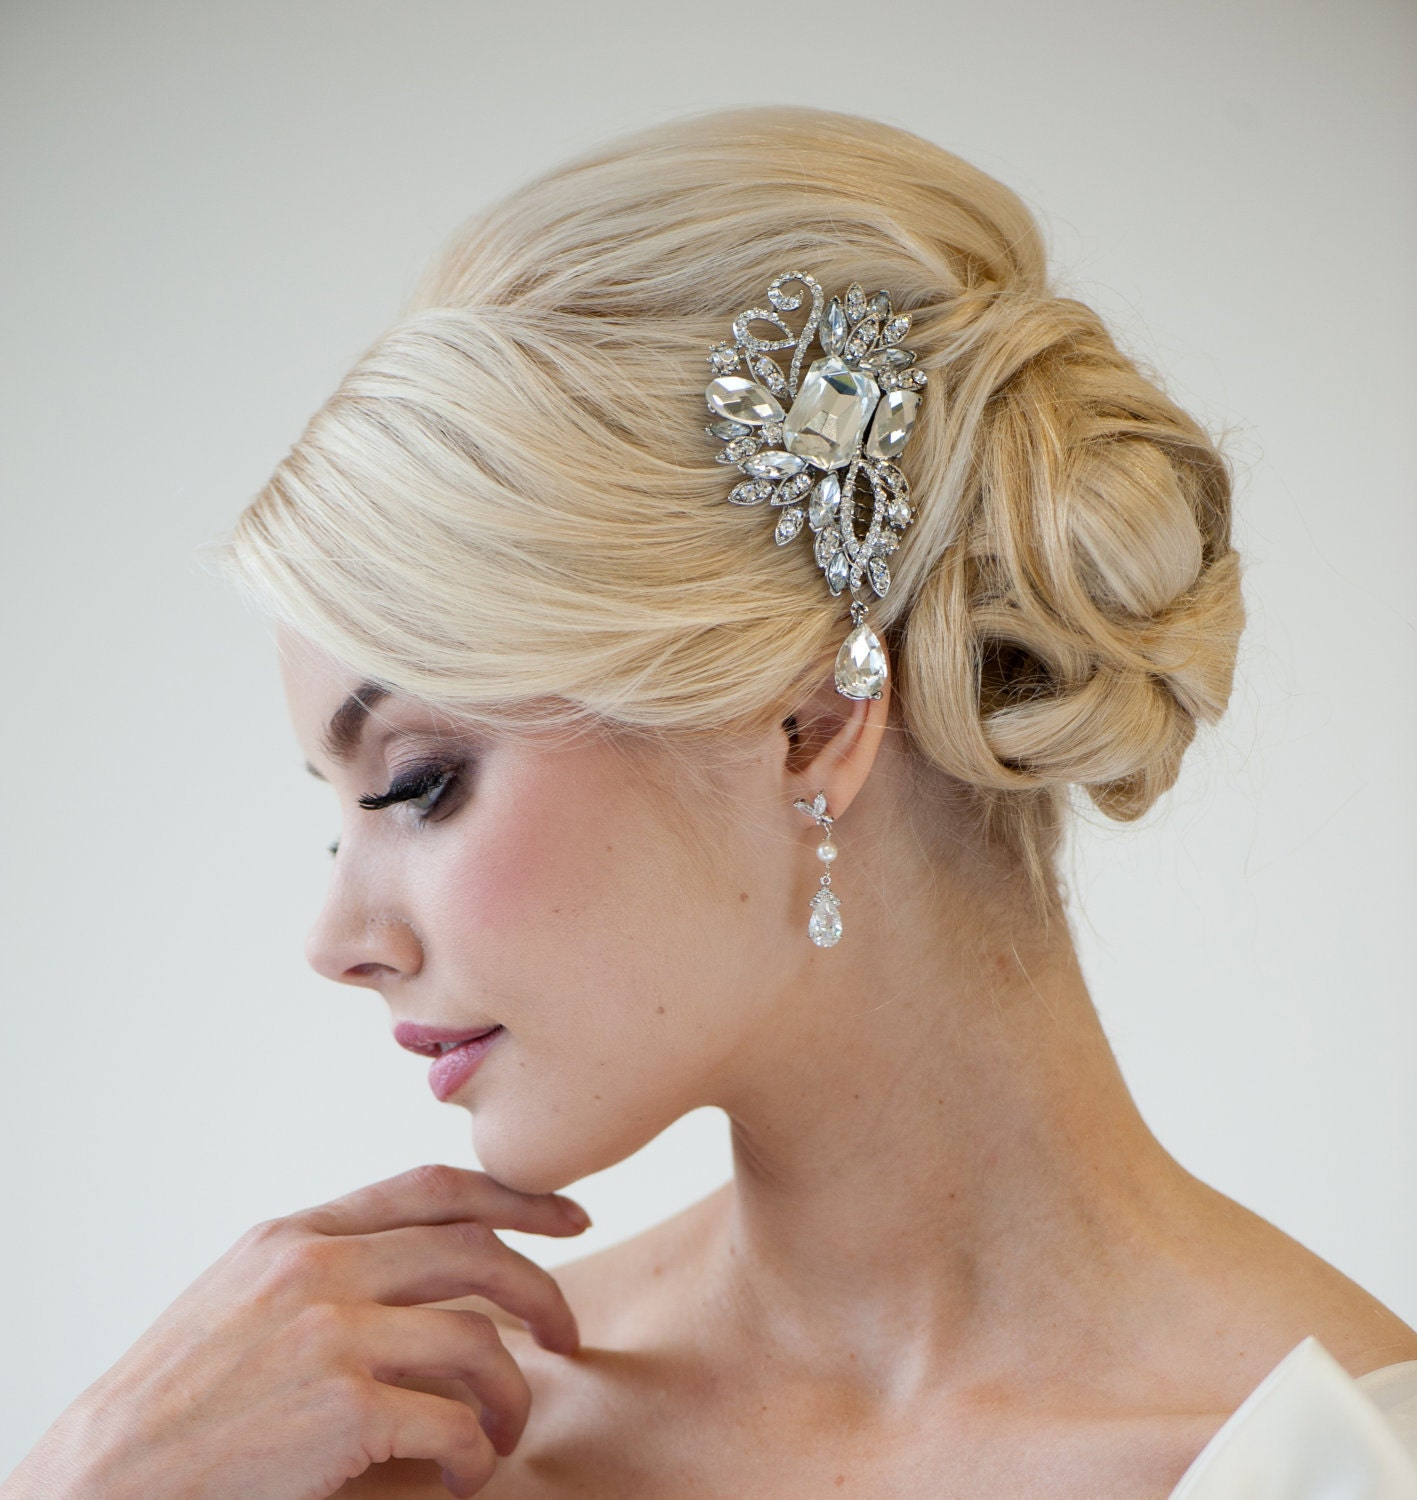 Create a modern bridal look with a bridal headband! Choose from wedding headbands and bridal ribbons available in lace and pearl and crystal accents. Shop now!